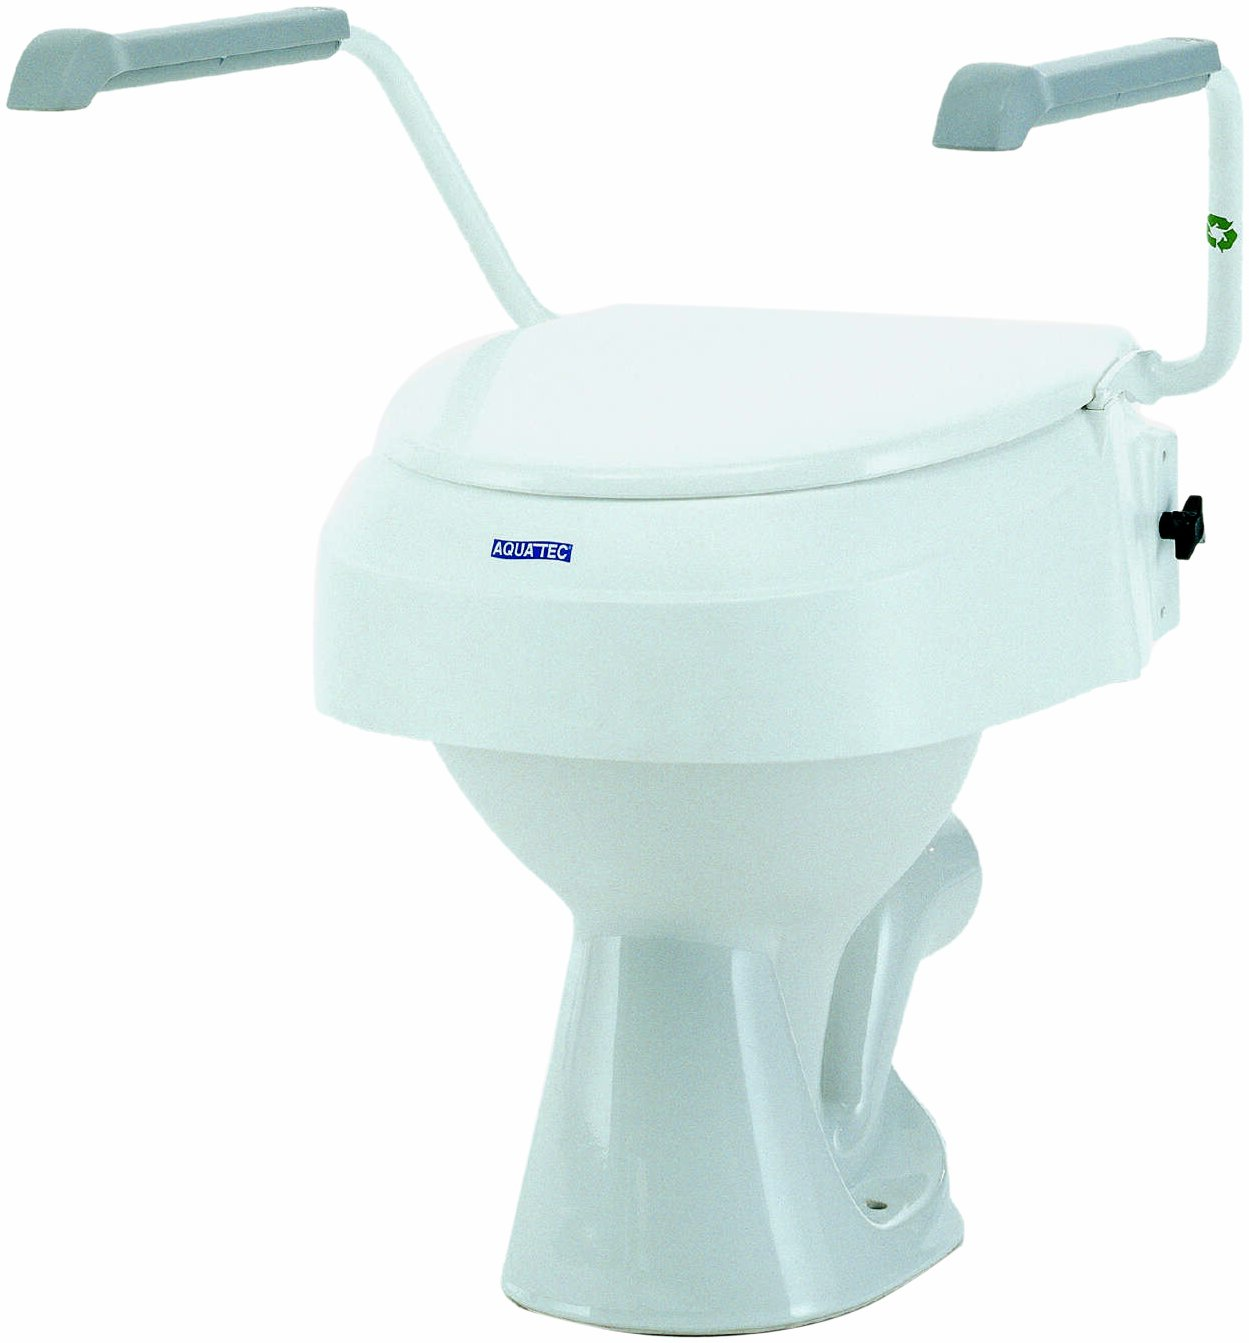 Sensational Amazon Com Invacare Aquatec 900 Toilet Seat Raiser With Gmtry Best Dining Table And Chair Ideas Images Gmtryco